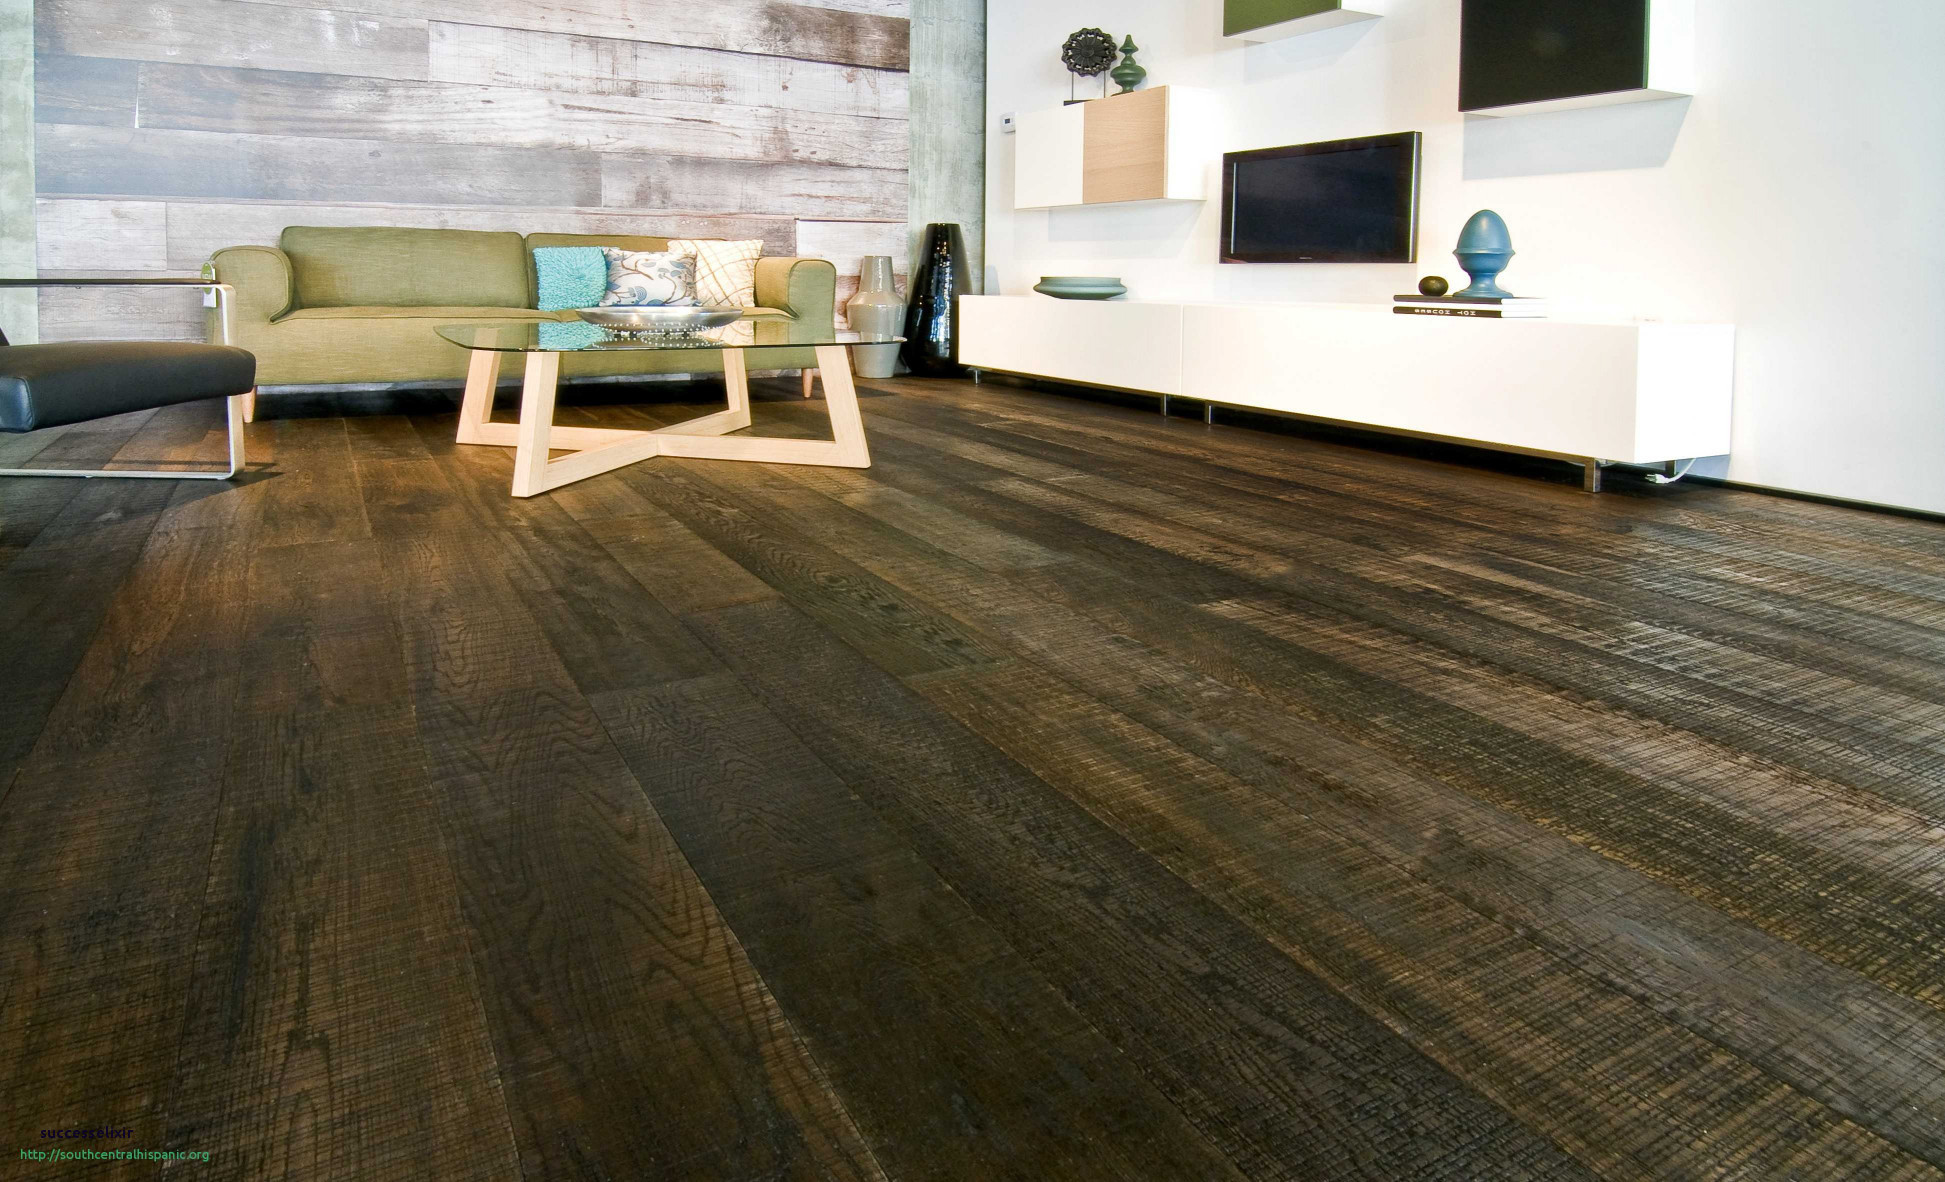 10 Fantastic Hand Scraped Engineered Hardwood Flooring Pros and Cons 2021 free download hand scraped engineered hardwood flooring pros and cons of the wood maker page 6 wood wallpaper with regard to 10 inspirational ceramic wood flooring inspirations